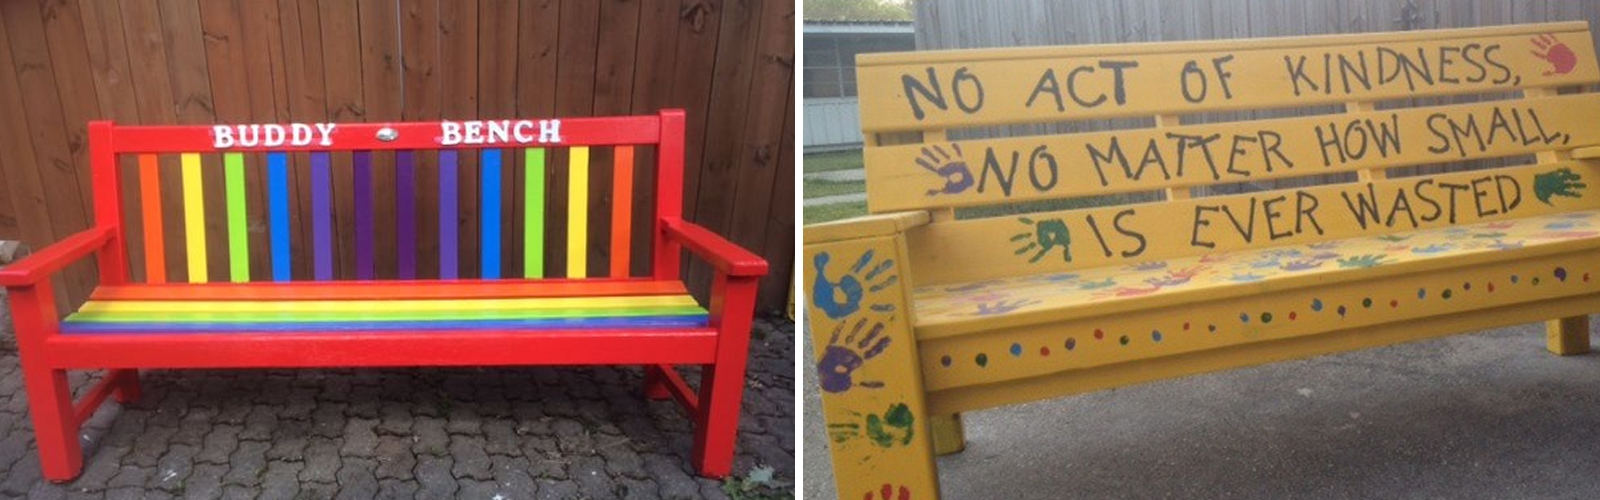 20 buddy benches clewer and dedworth west